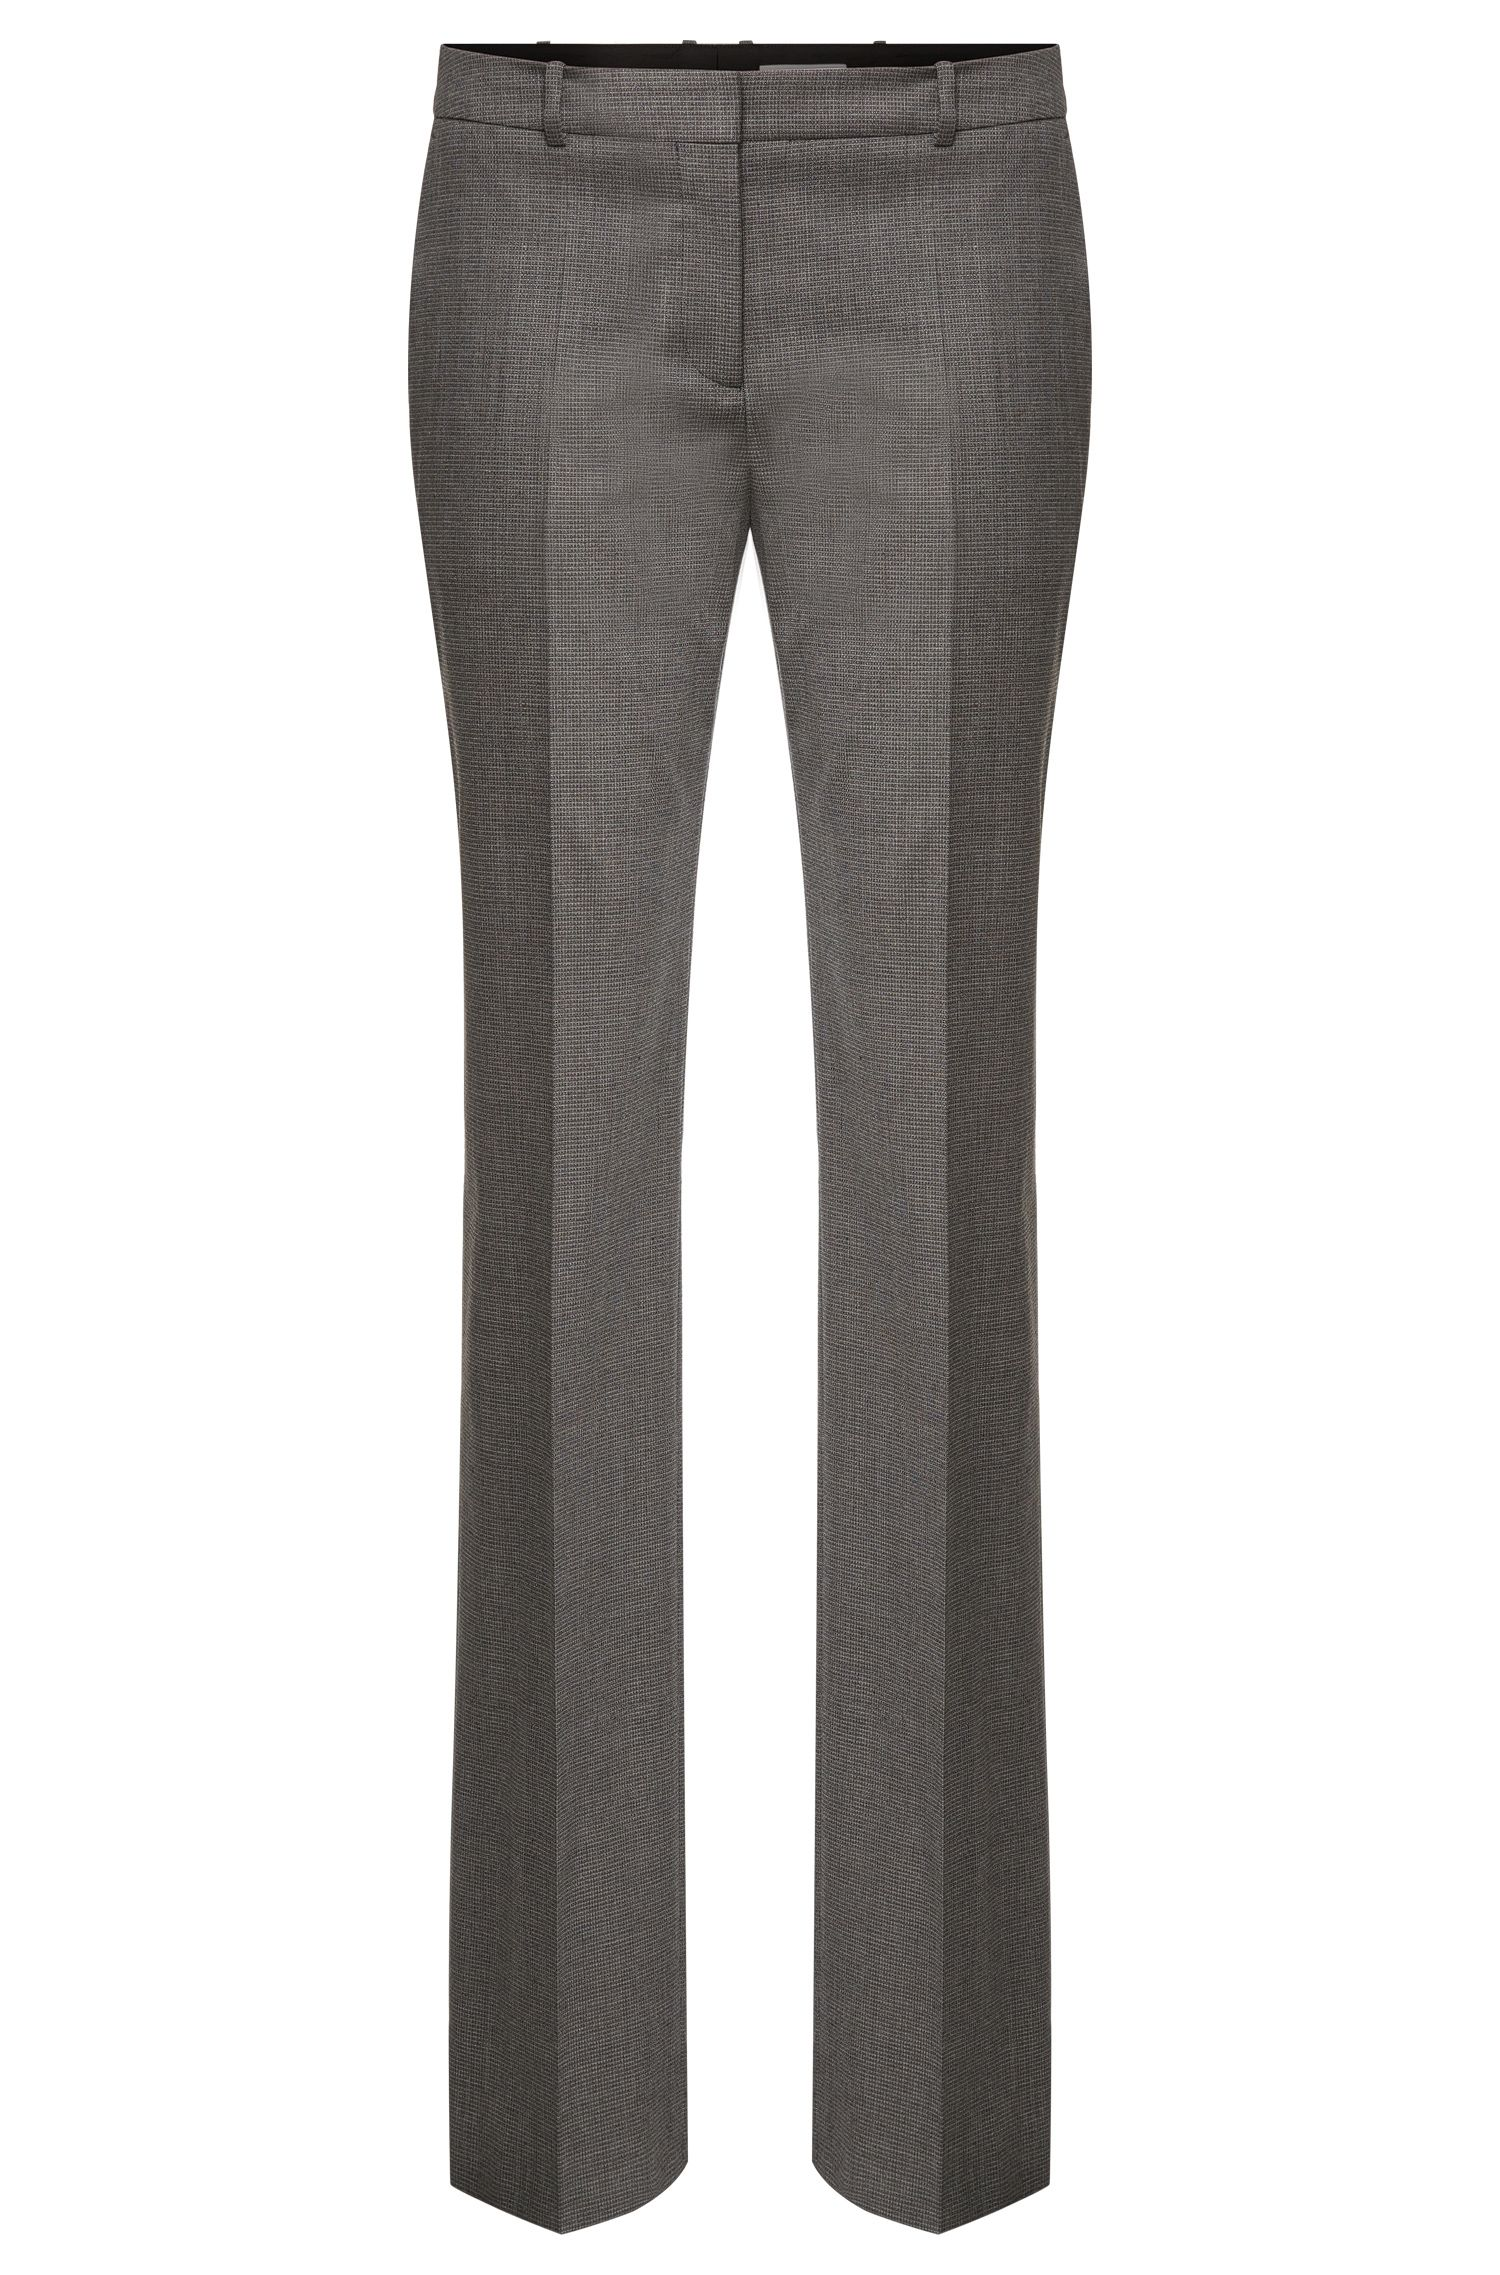 'Tamea' | Stretch Virgin Wool Blend Patterned Dress Pants